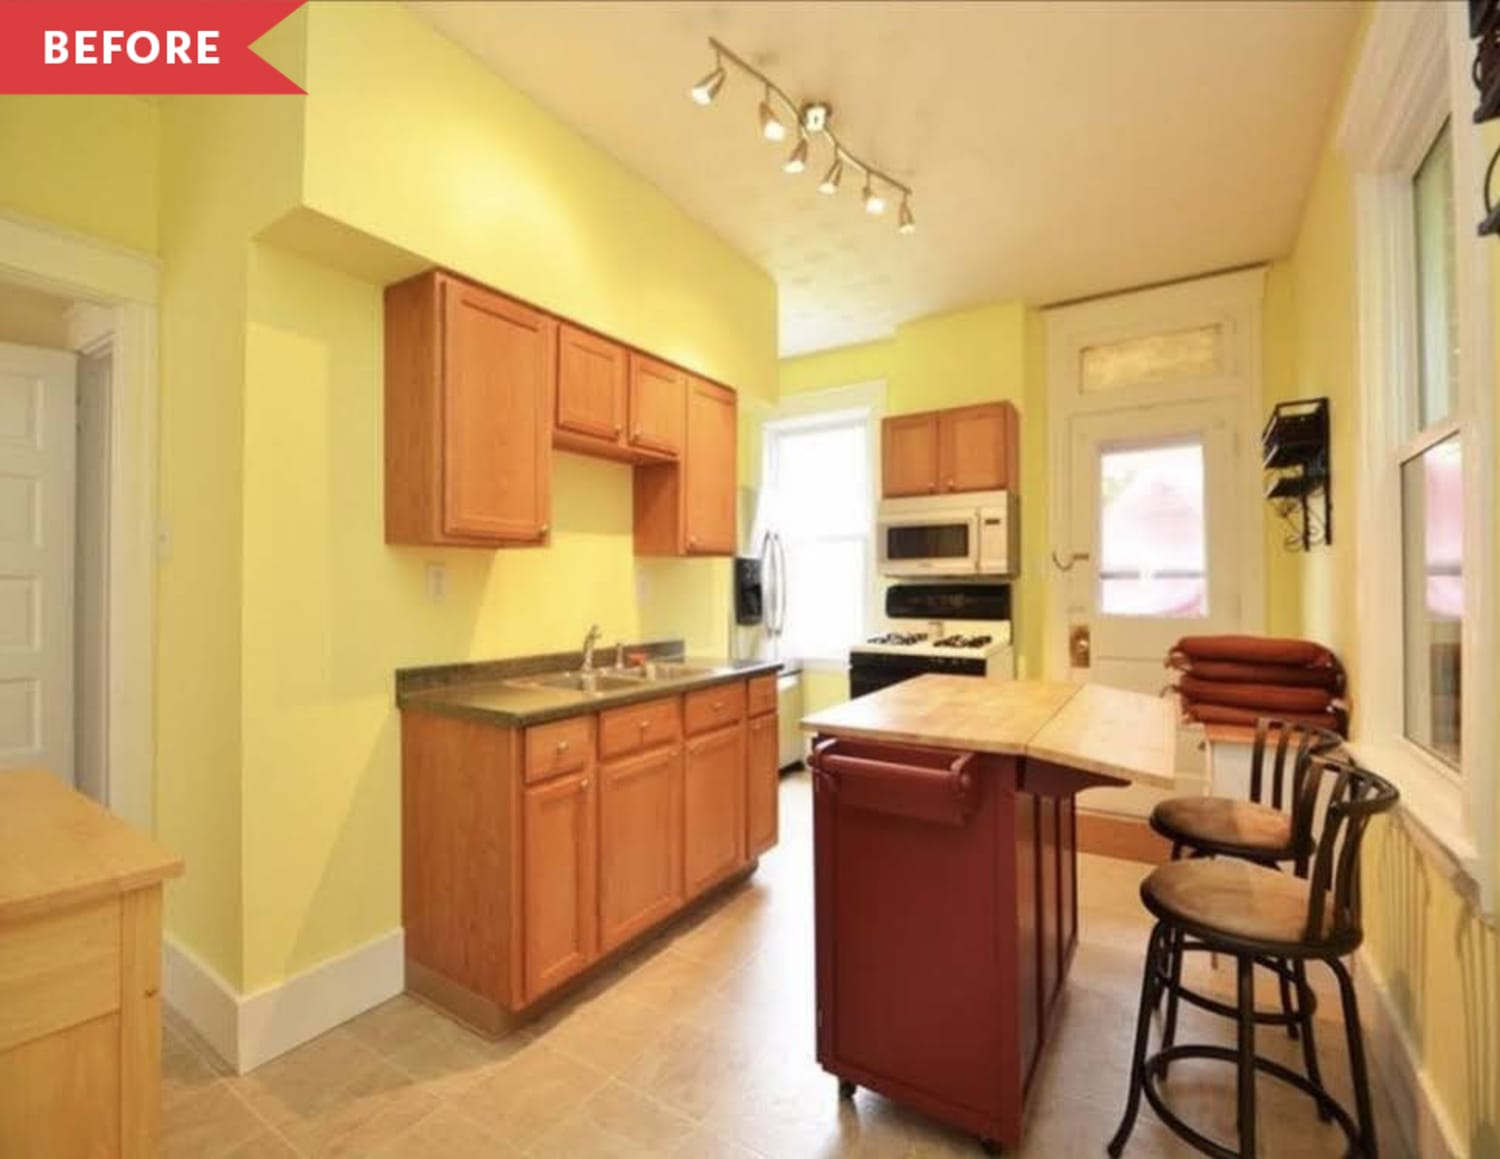 Before & After: A 2-Week, $900 Redo Gives a Dated Kitchen an Incredible New Life